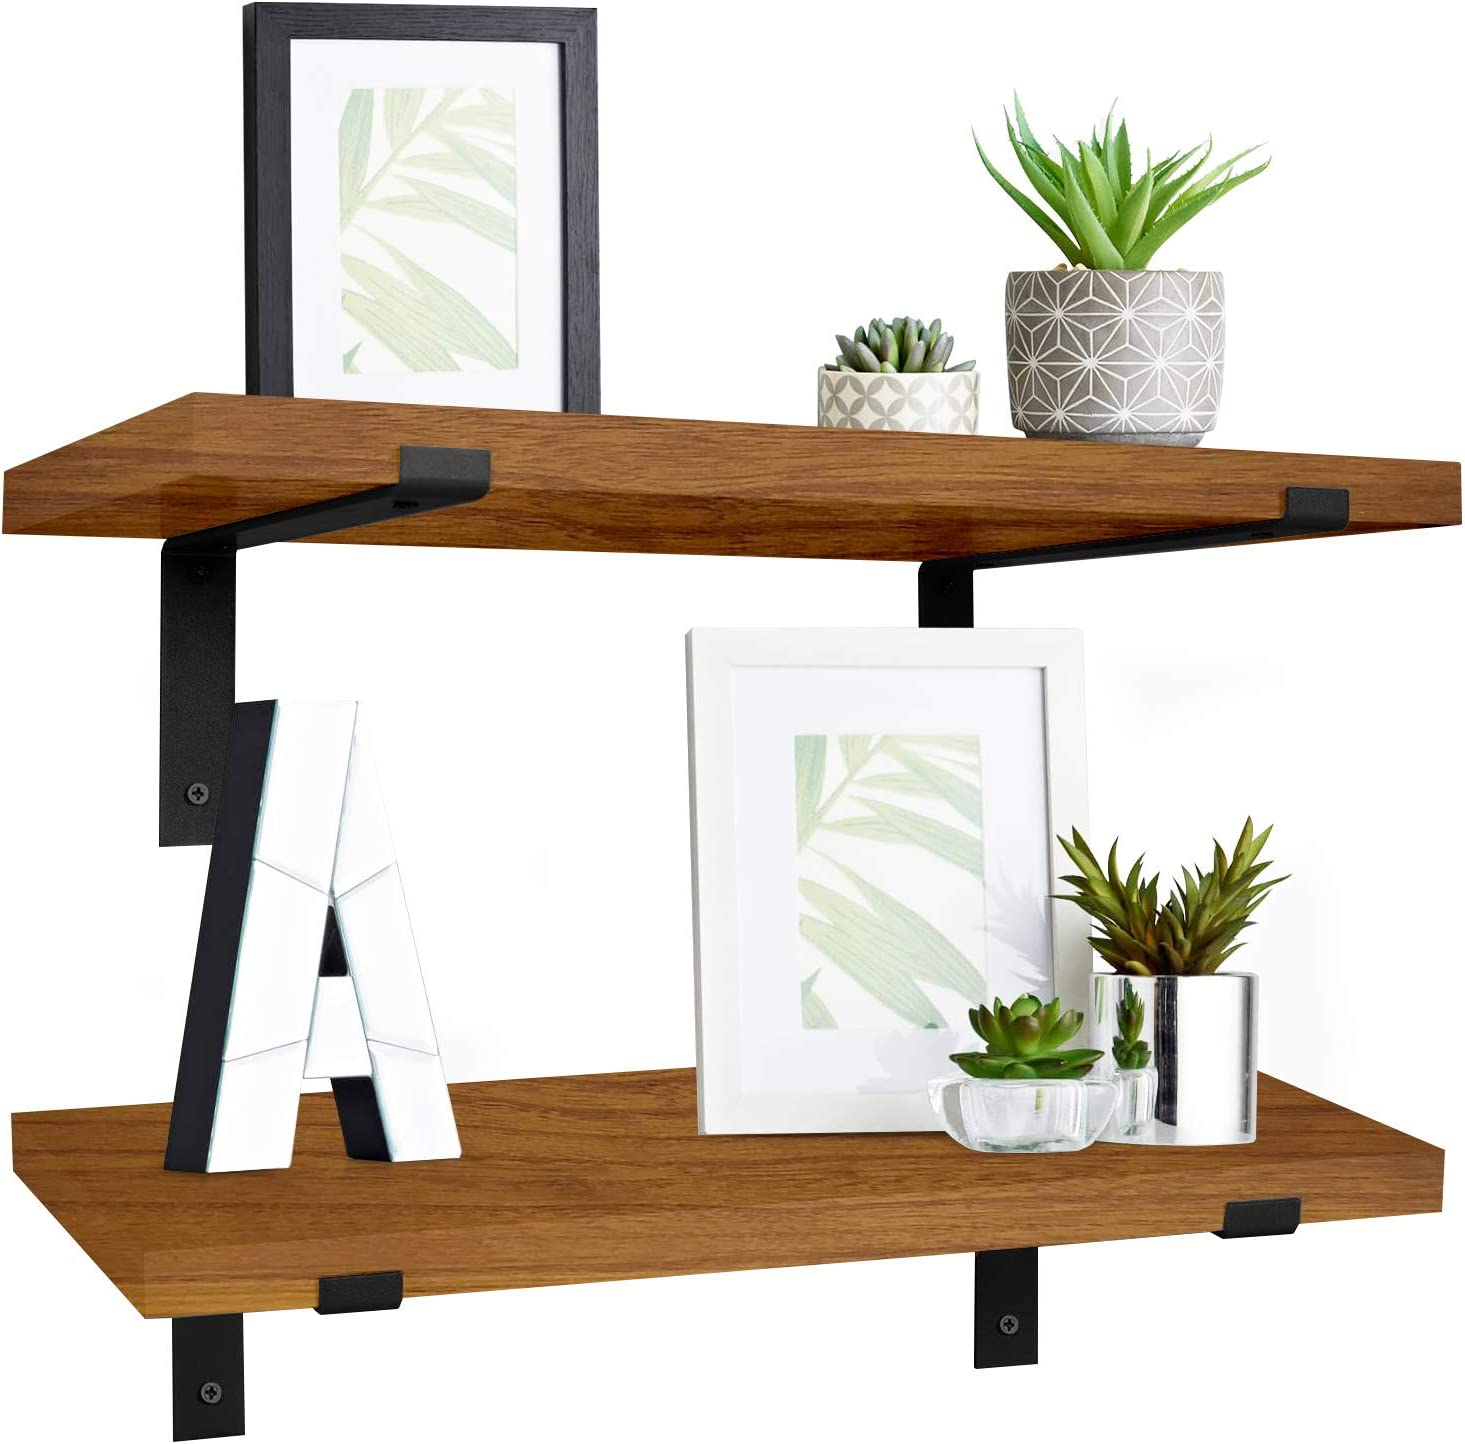 Floating Shelves for Wall Decor | Set of 2 Modern Rustic Wall Shelves, Elegant Wall Decorations for Living Room, Bathroom, or Bedroom | Farmhouse Aesthetic Room Decor DIY (Rustic Wood) | by NEATLY